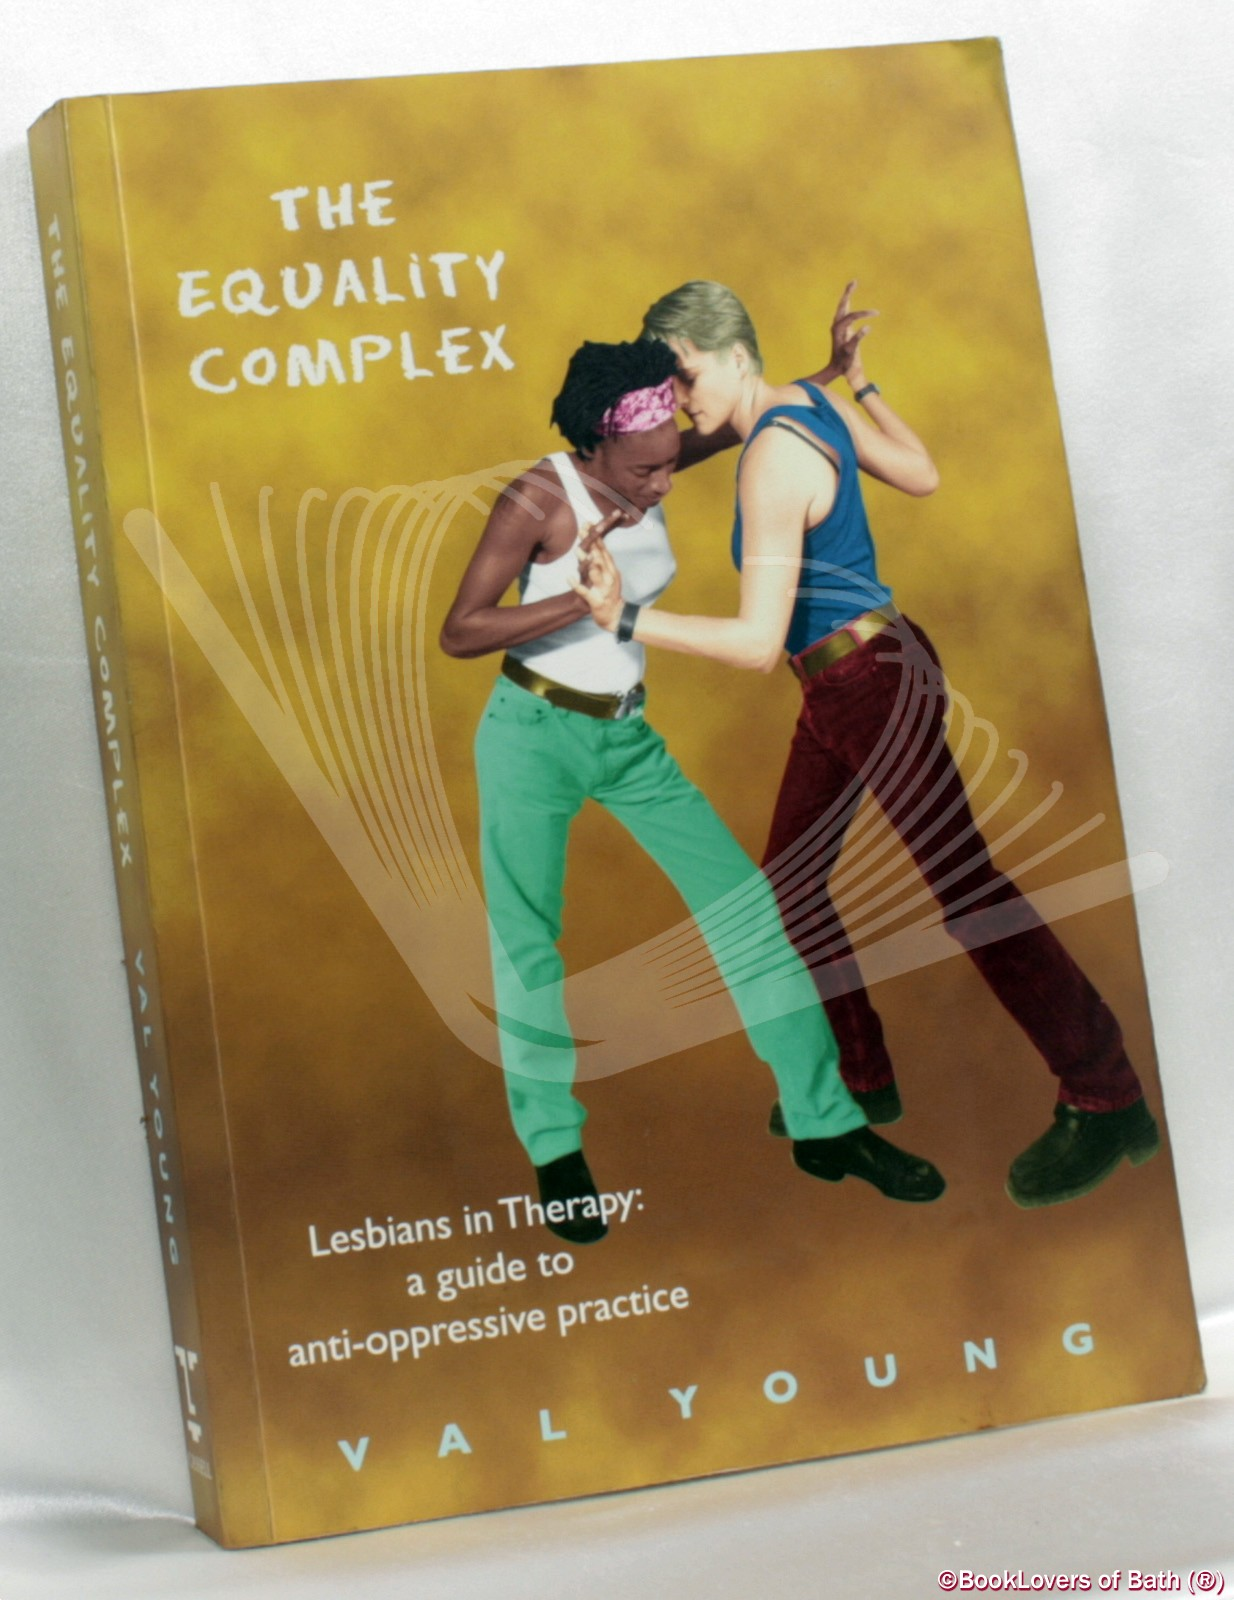 The Equality Complex: Lesbians in Therapy: A Guide to Anti-oppressive Practice - Val Young